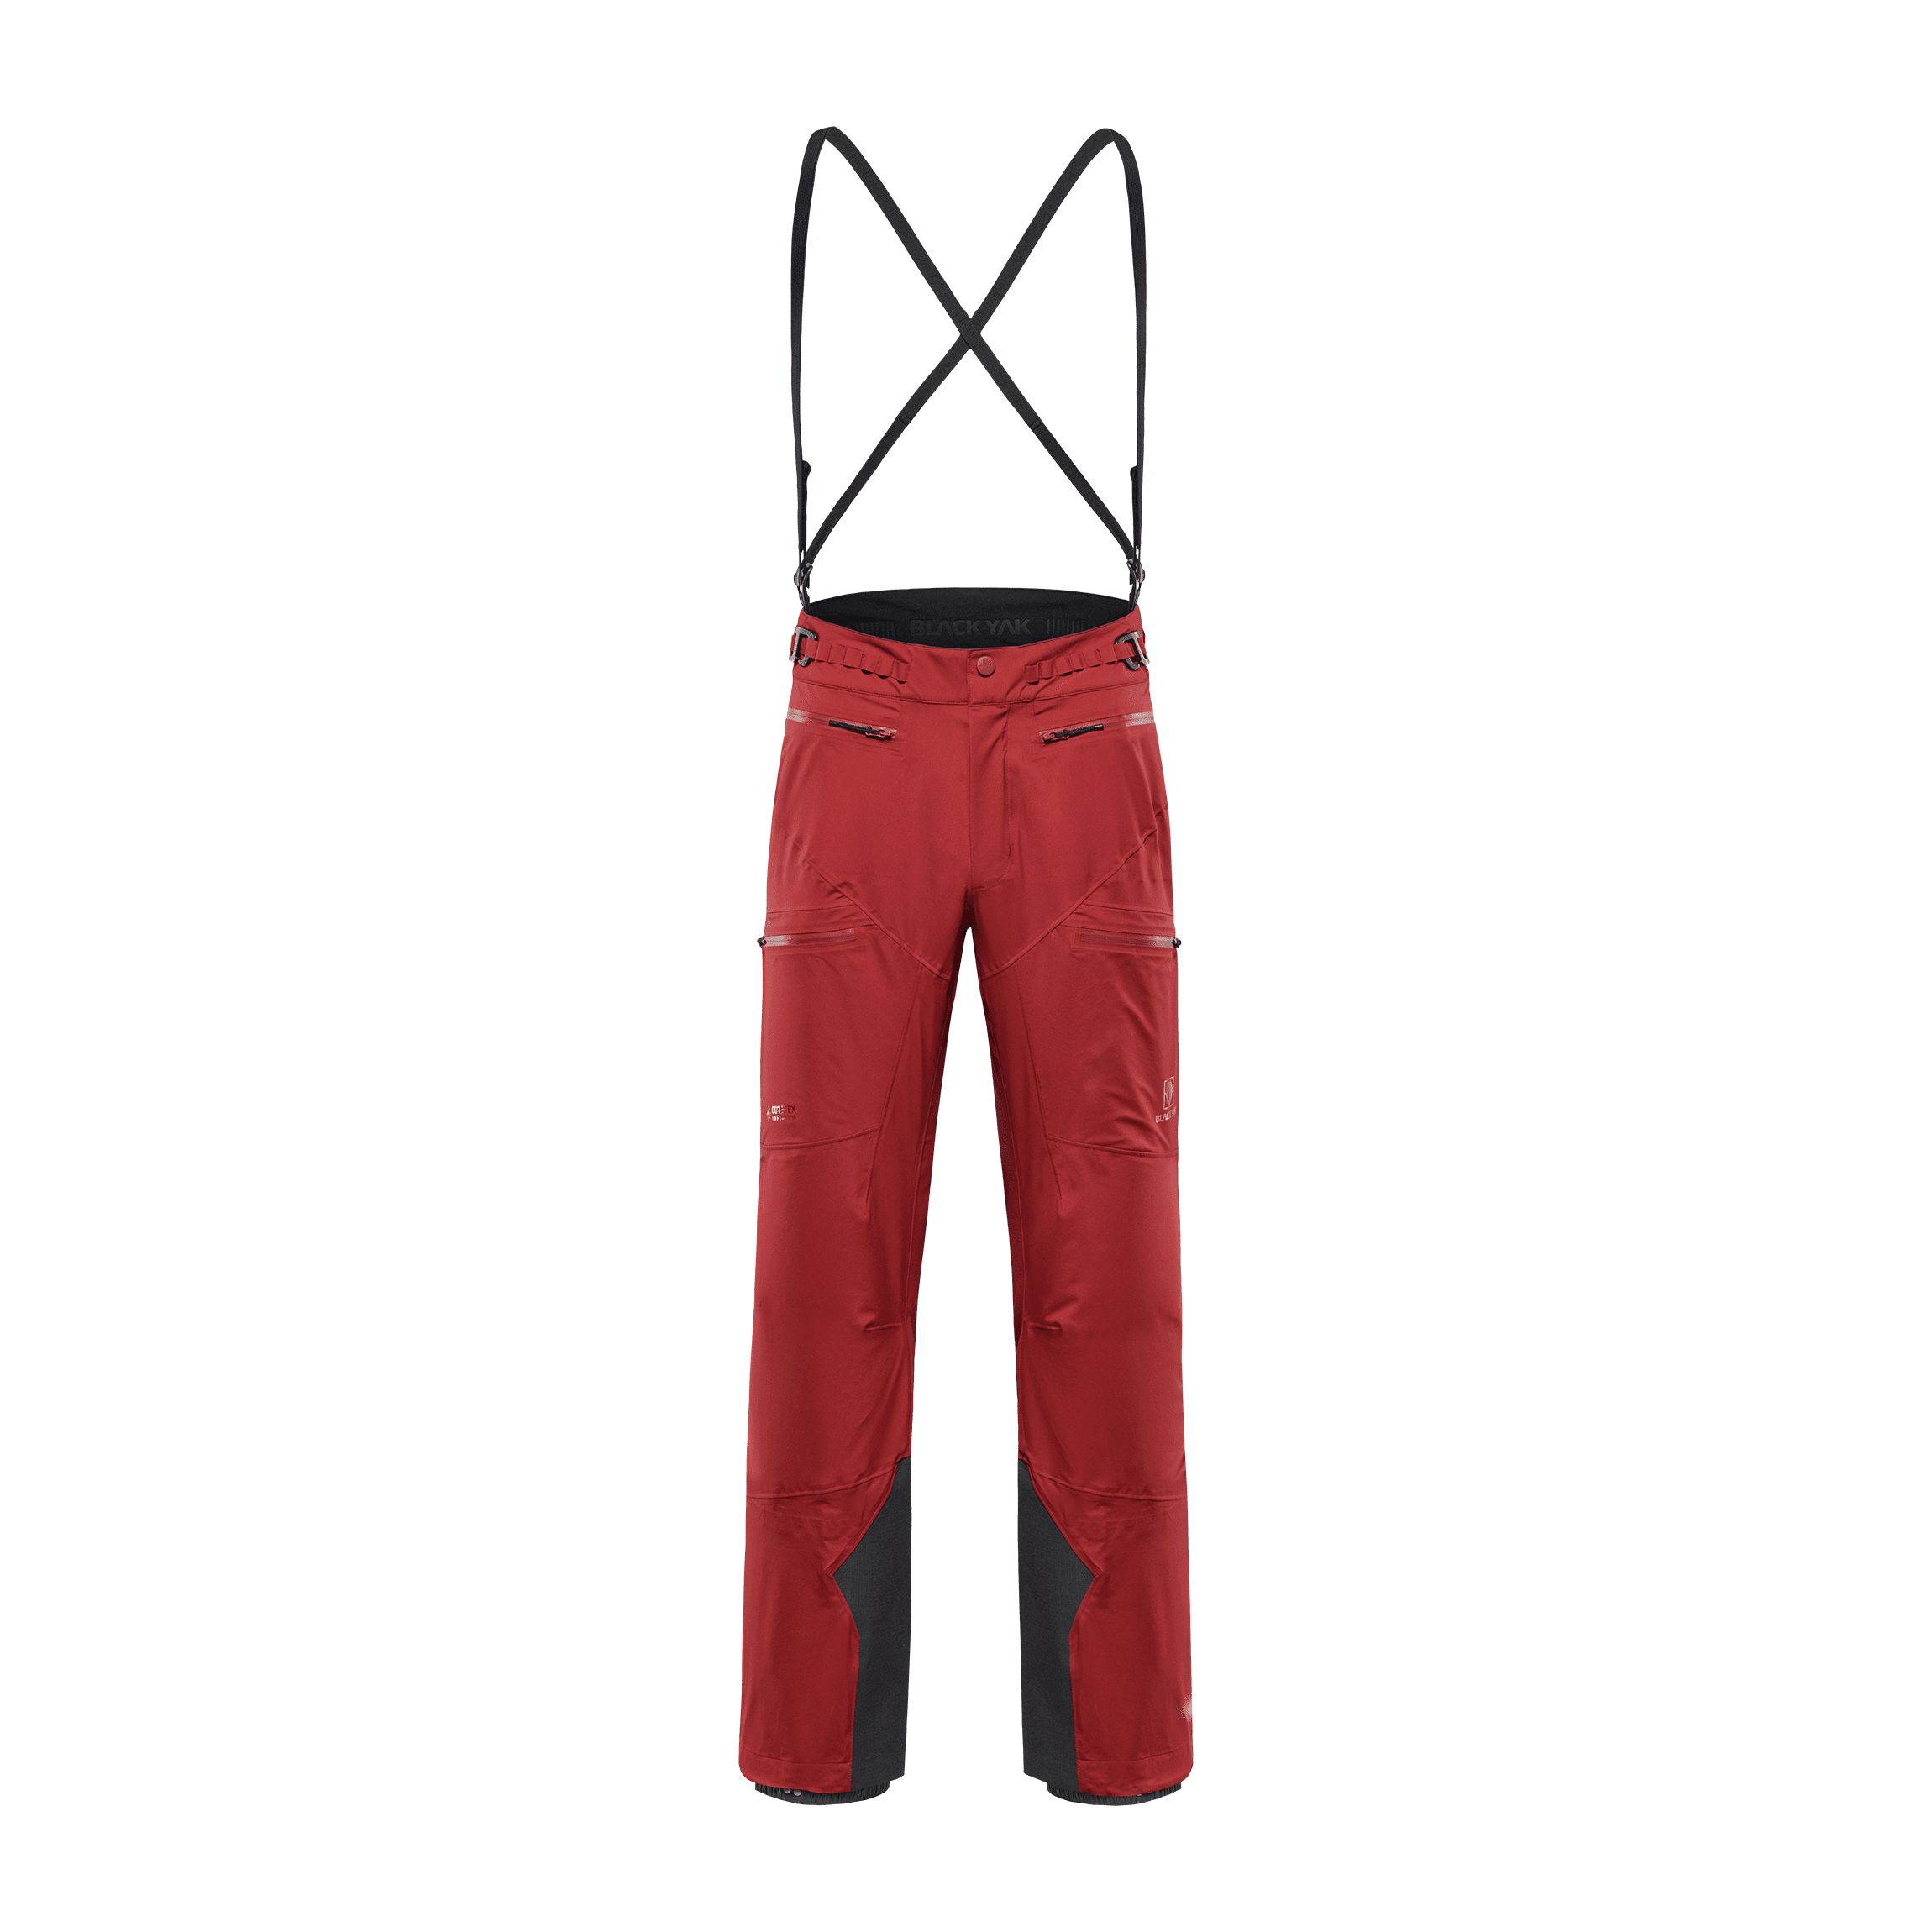 HARIANA PANTS